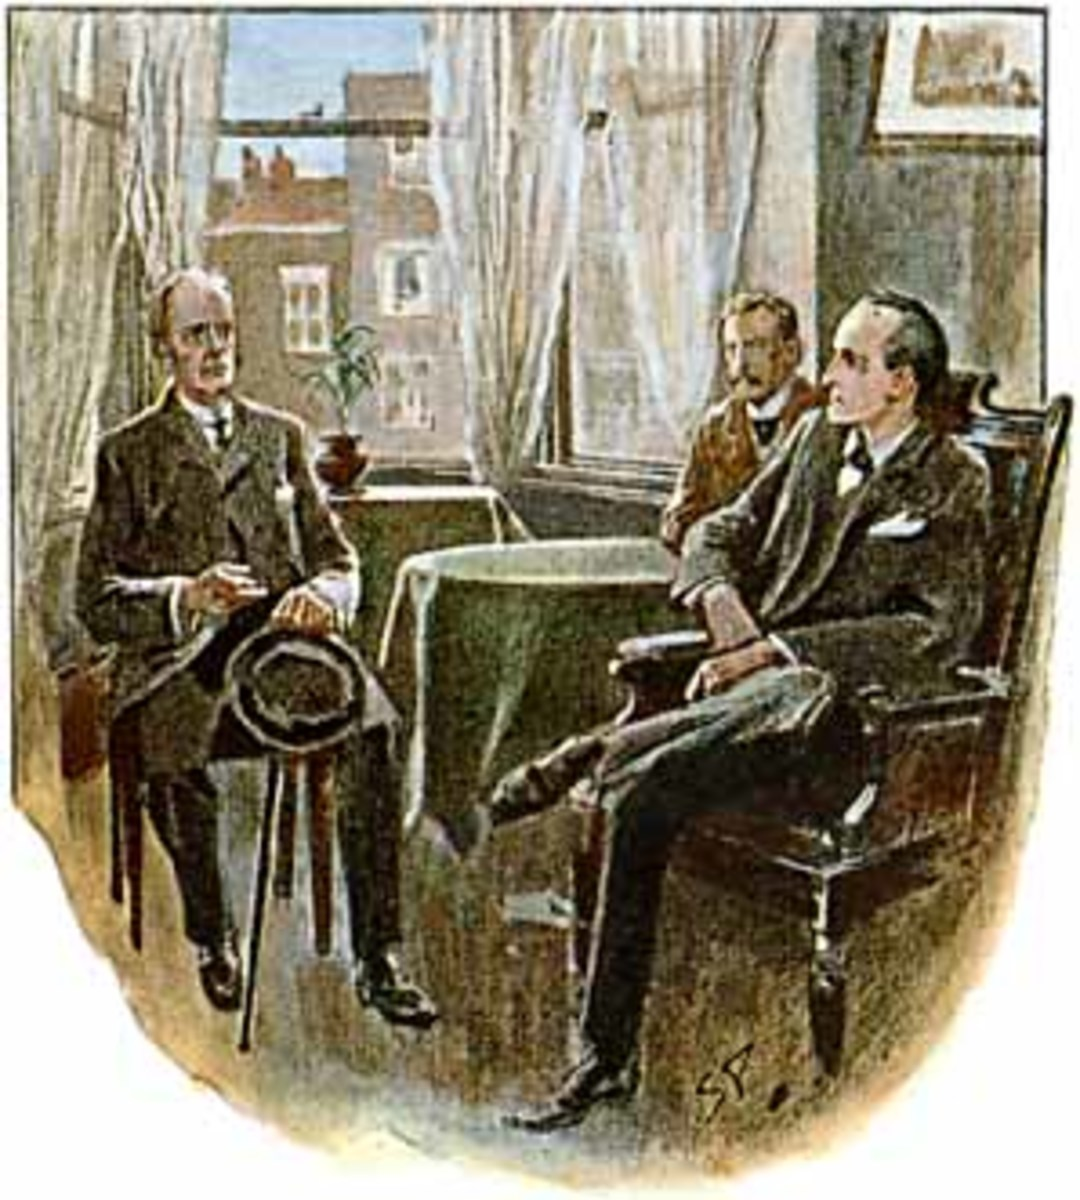 Arthur Conan Doyle, The Adventure of the Three Students (1904), Illustration by Sidney Paget, in The Strand Magazine